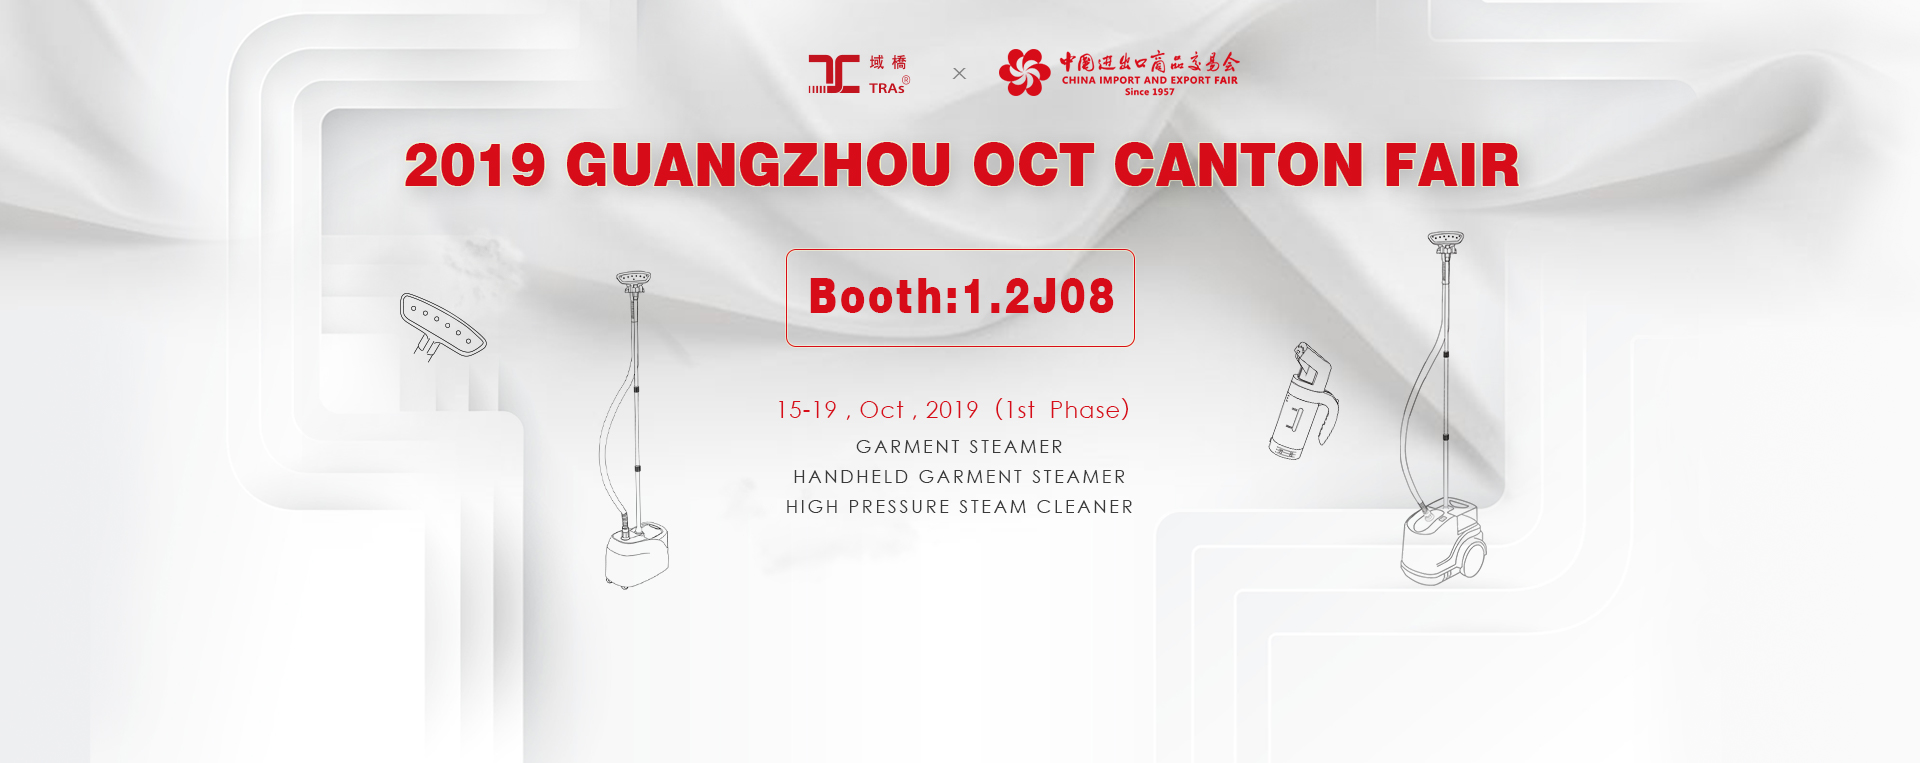 2019 guangzhou oct canton fair